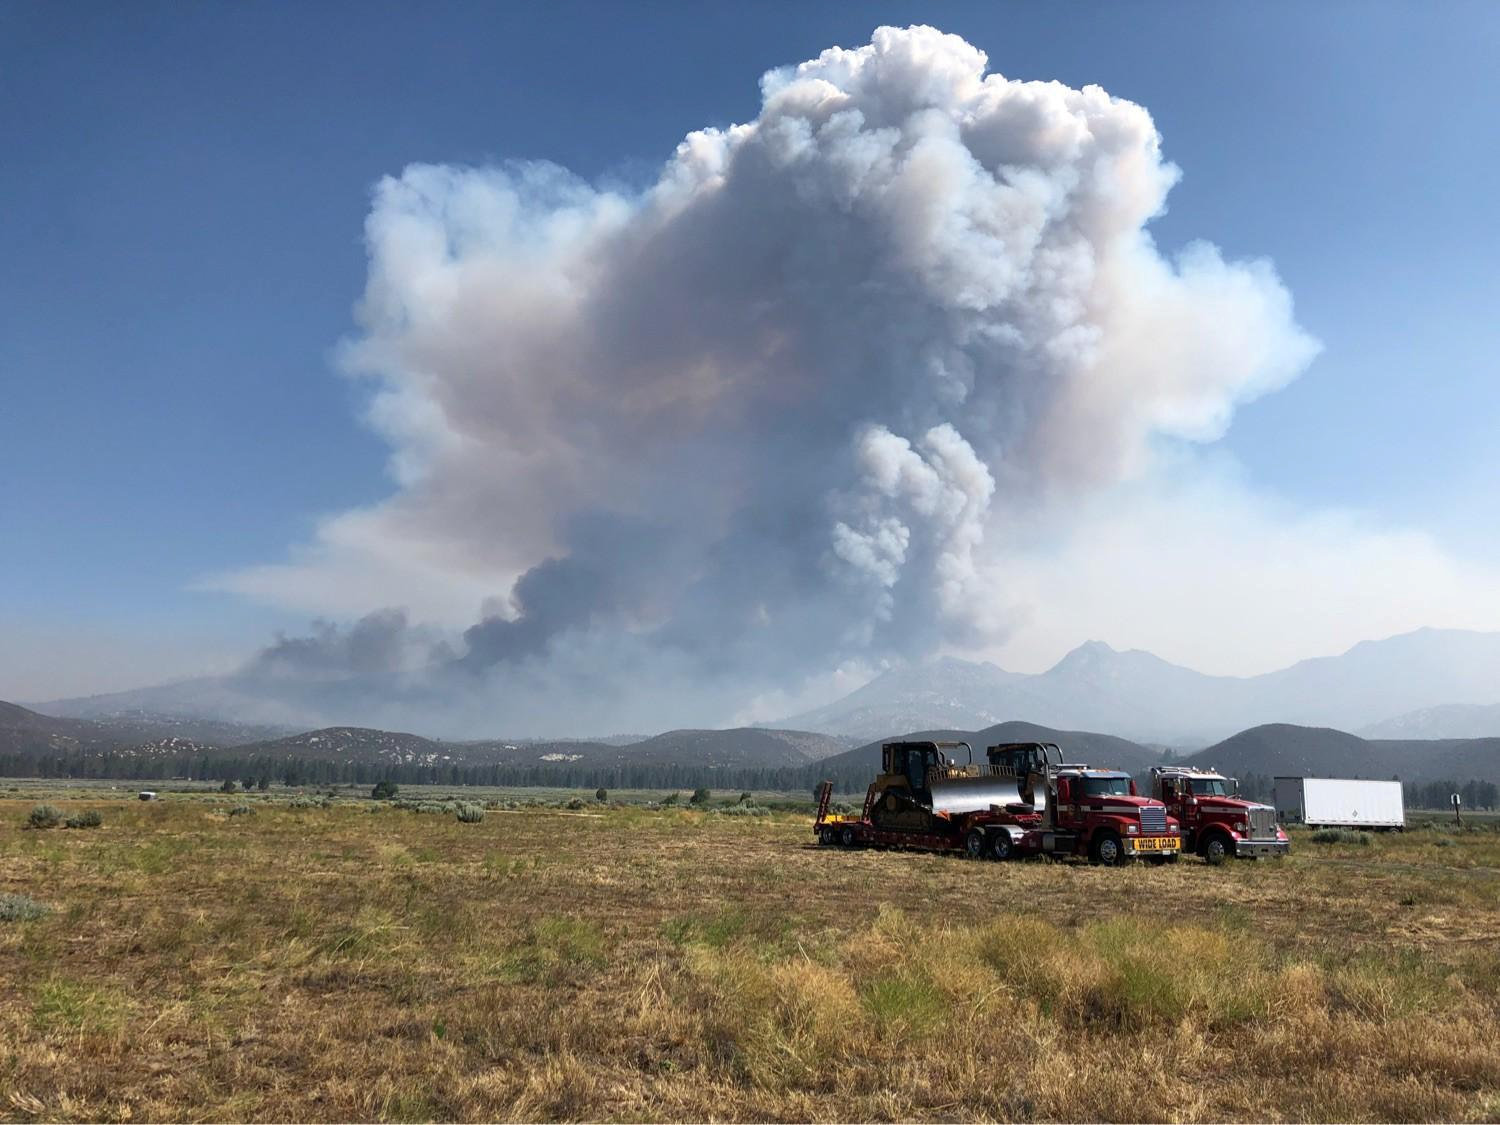 Smoke from the Cranston Fire is shown from east of Lake Hemet in Riverside County, California, U.S., July 26, 2018. USFS/Handout via REUTERS